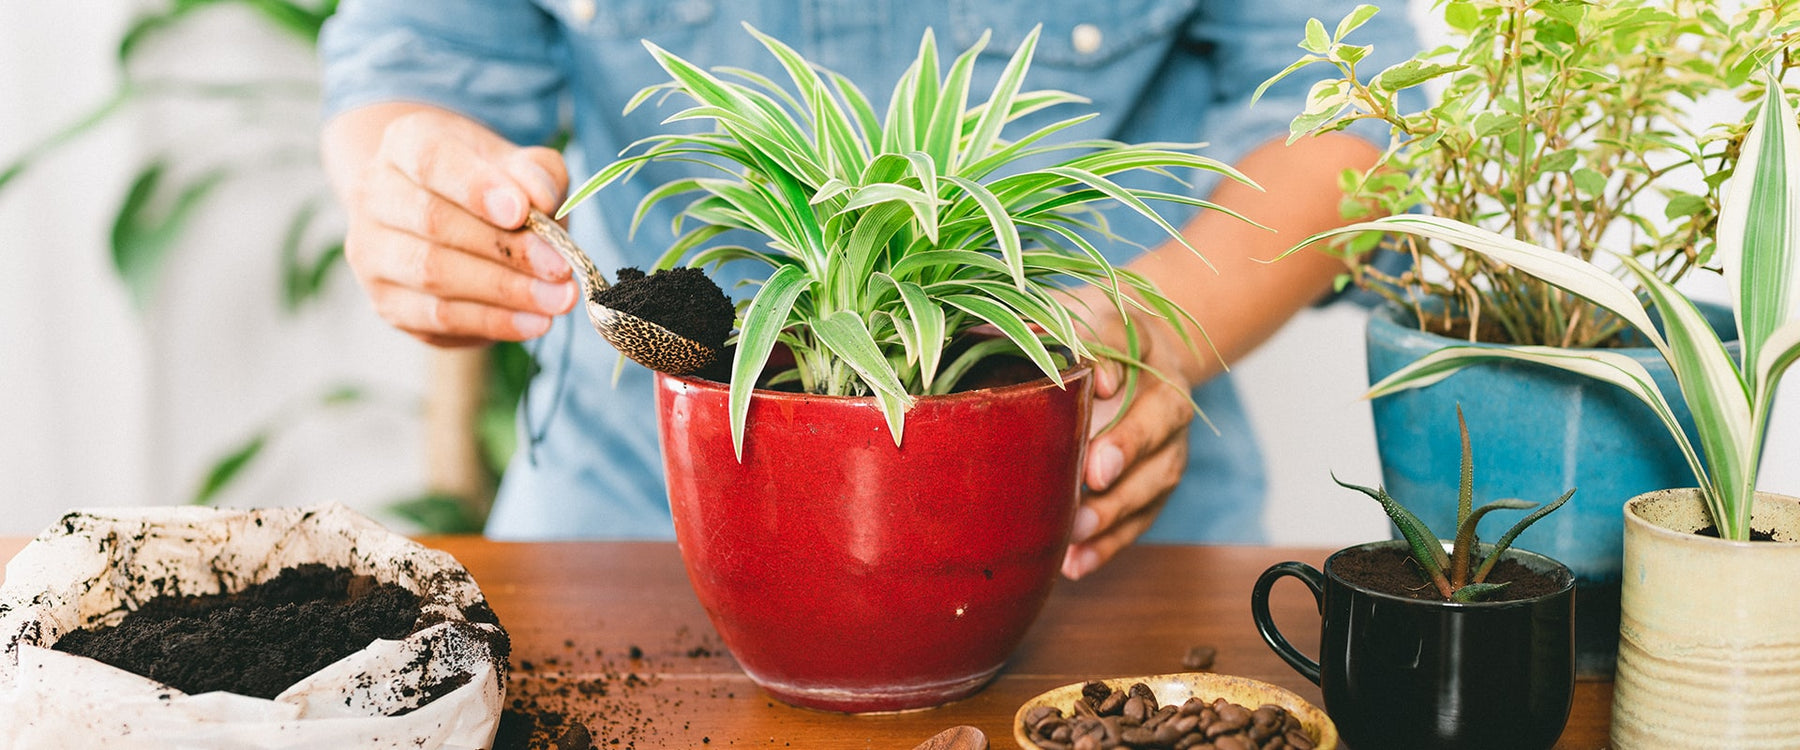 10 Creative and eco-friendly ways to reuse coffee grounds at home